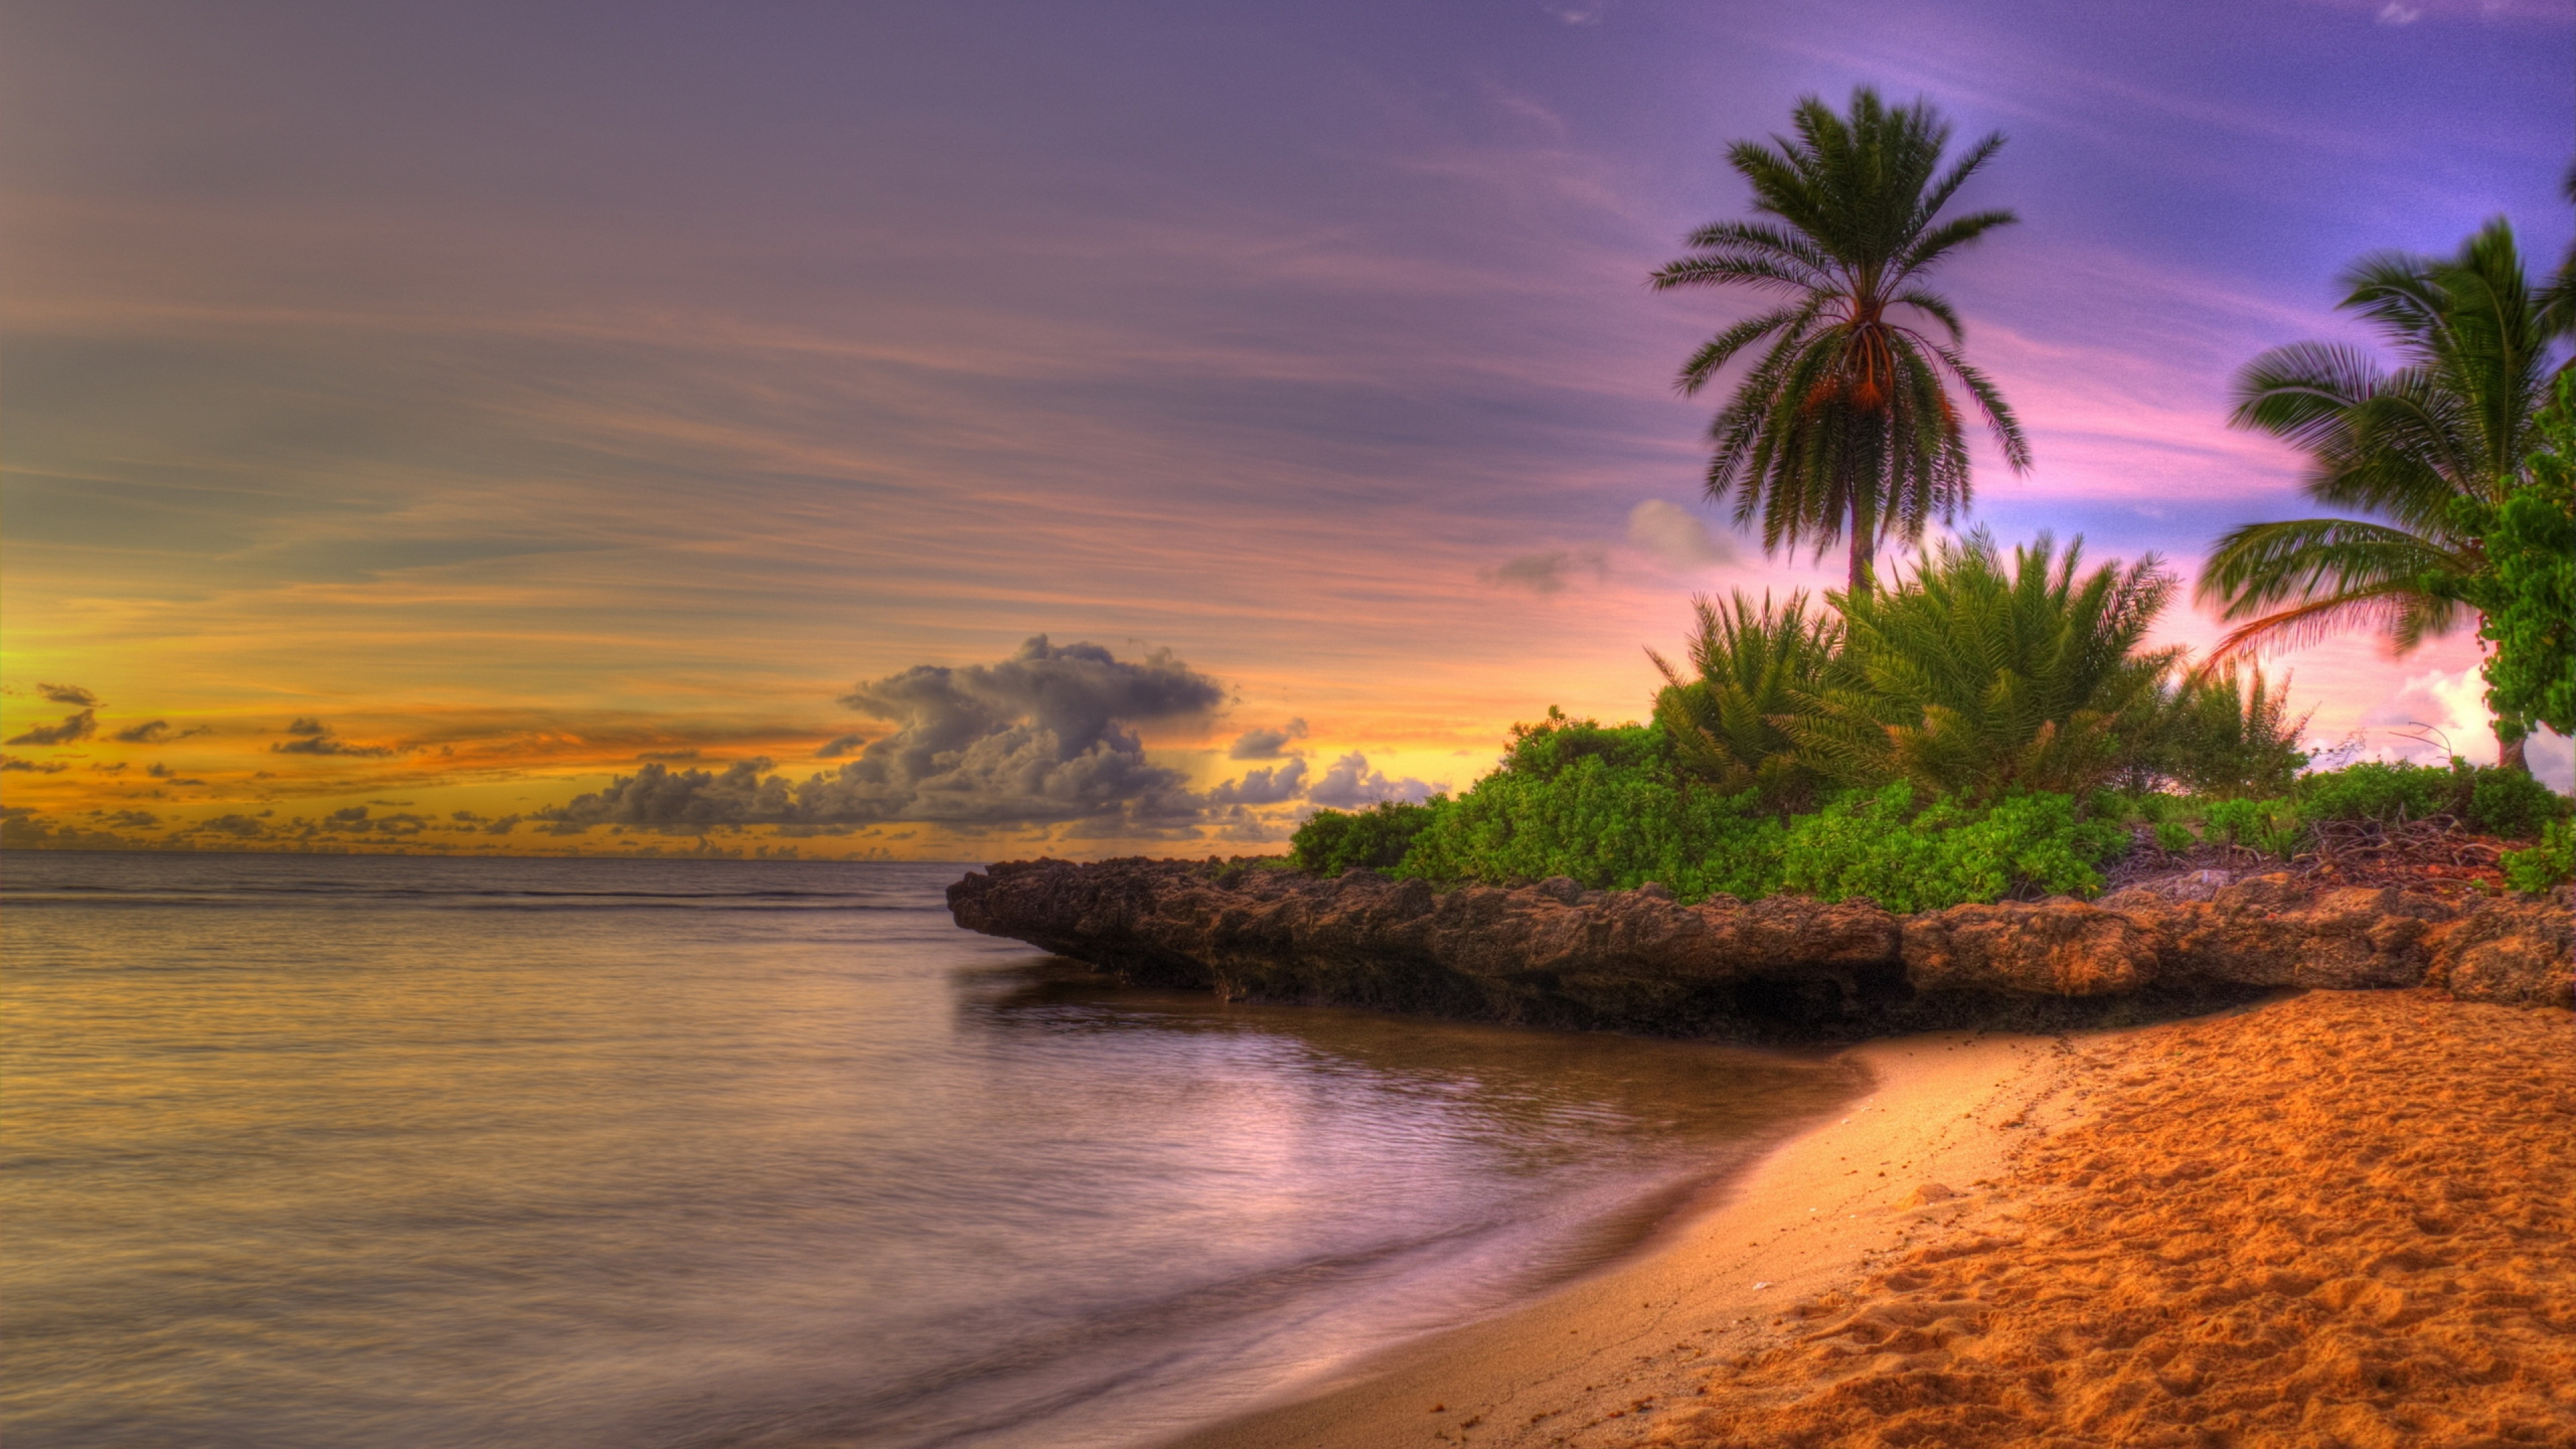 4k palm trees wallpapers high quality download free - Free palm tree screensavers ...